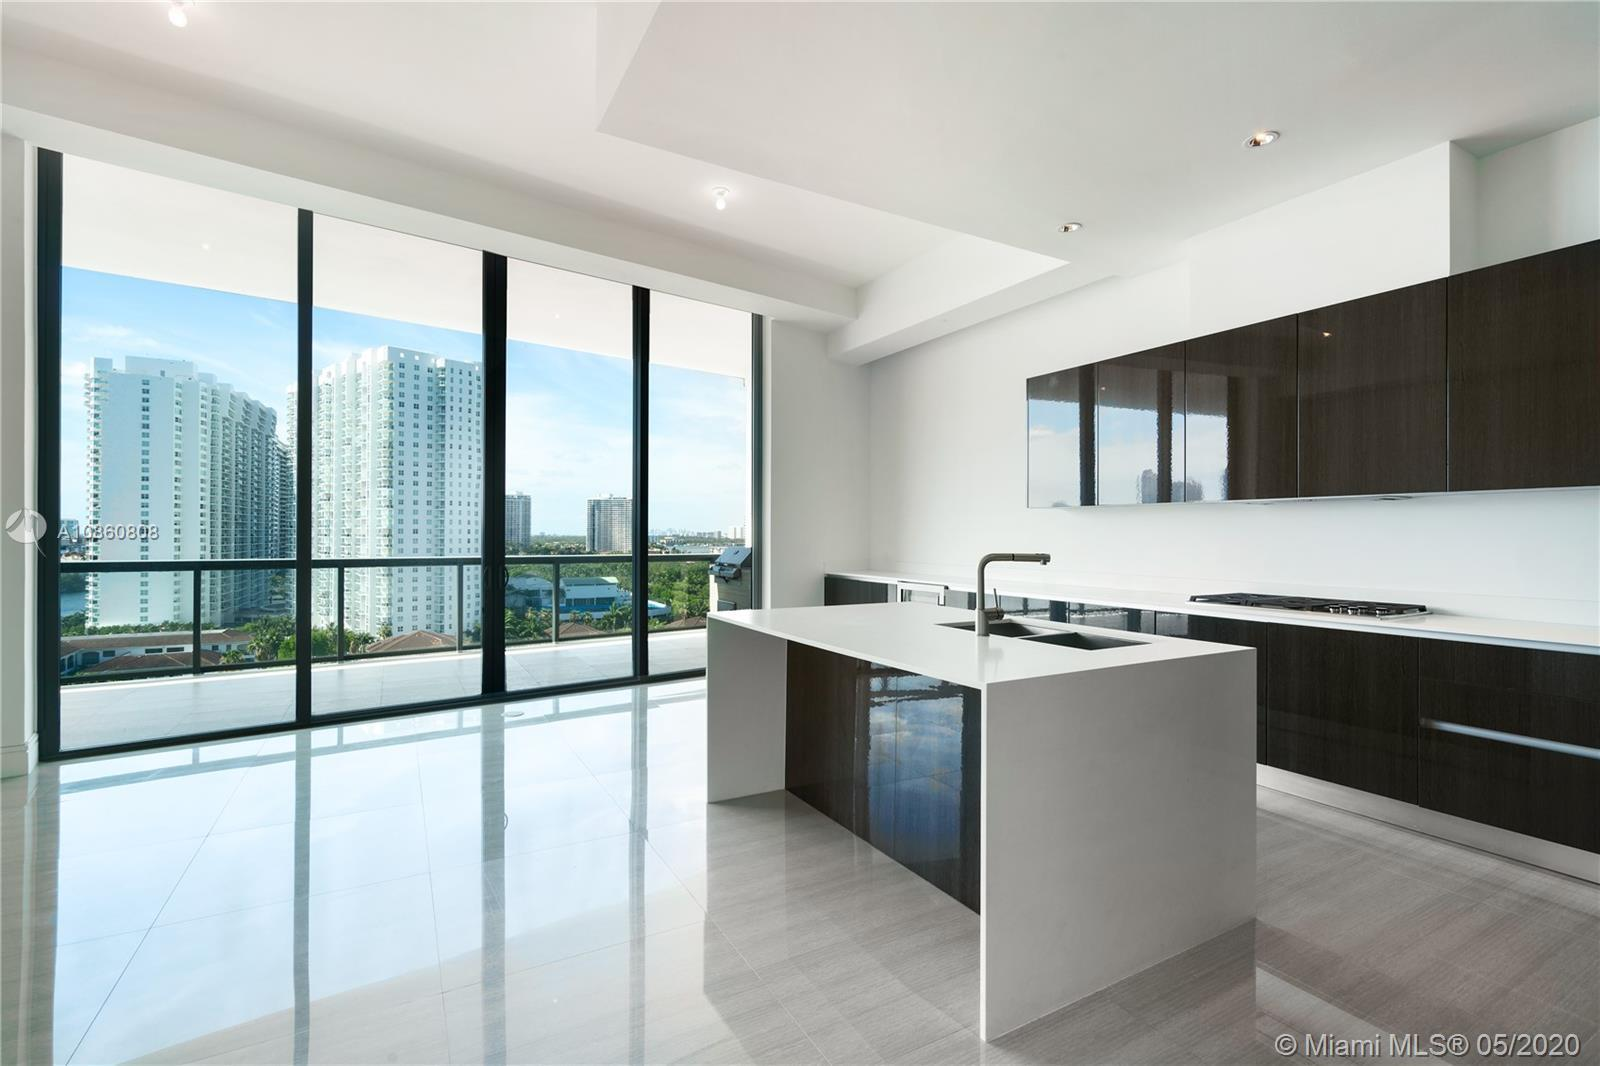 Elegant penthouse with panoramic views of the ocean & intracoastal. Enjoy your private rooftop deck